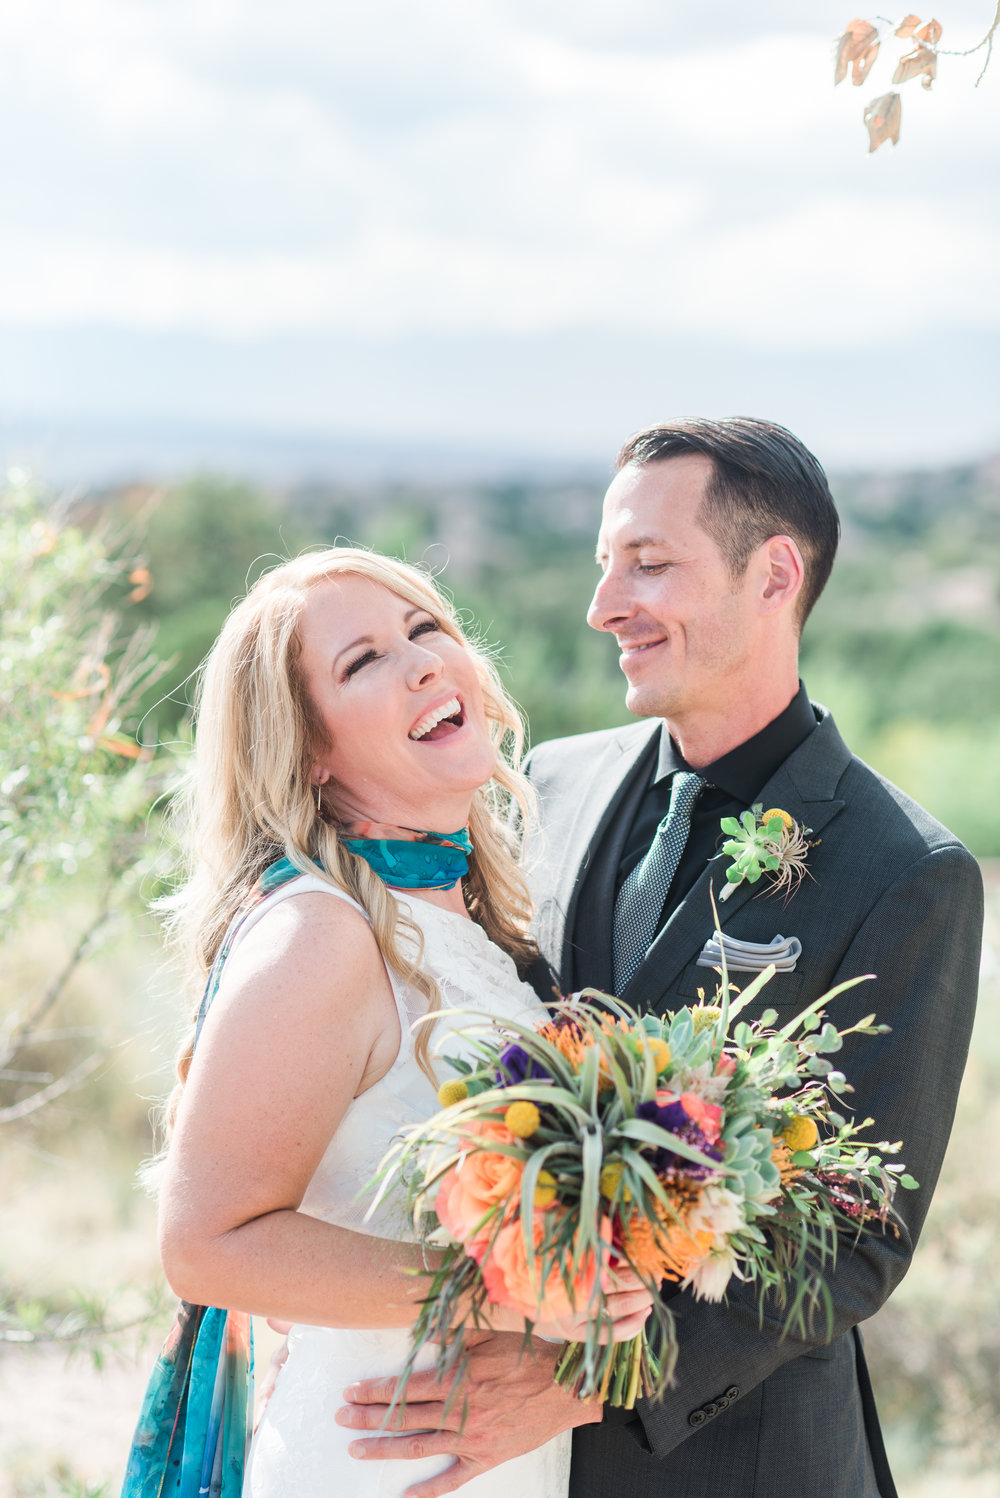 Alissa + Clint. Santa Fe, 2018. Planner: The always amazing Maria Socha, Sealed with a Kiss. http://www.sealedwithakissevents.com/ photo by    Maura Jane Photography   .